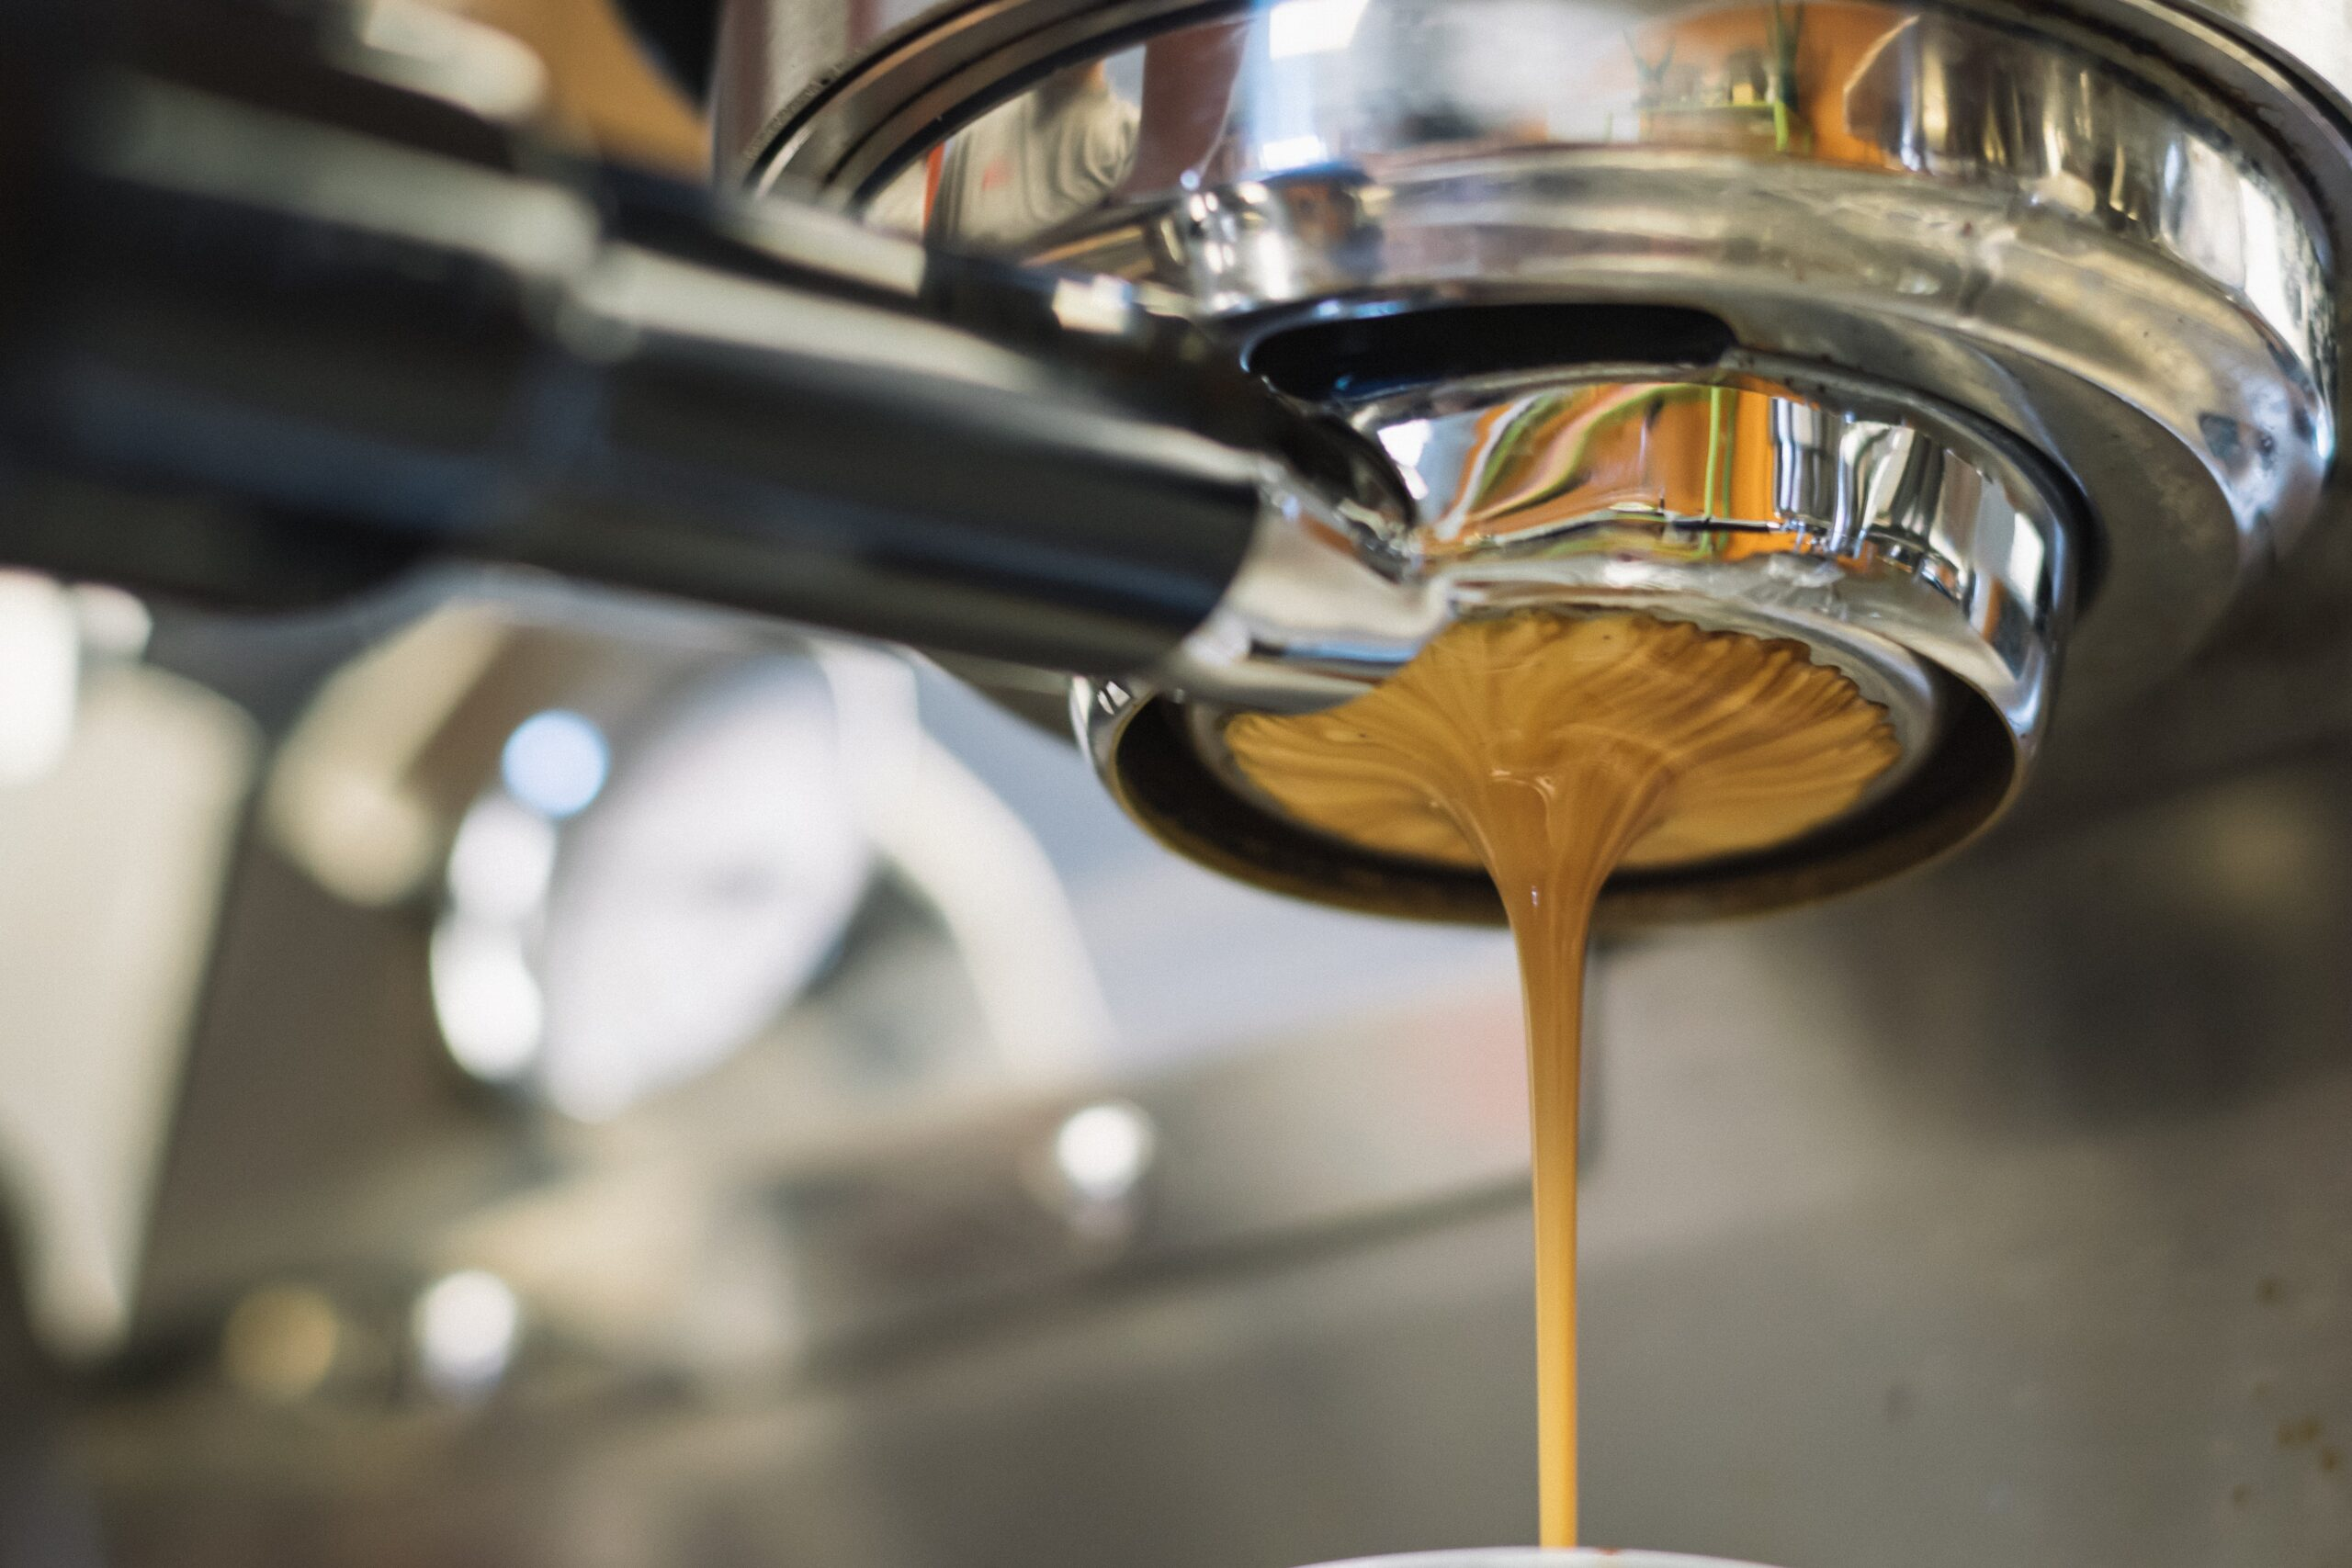 Latte dripping from a coffee machine